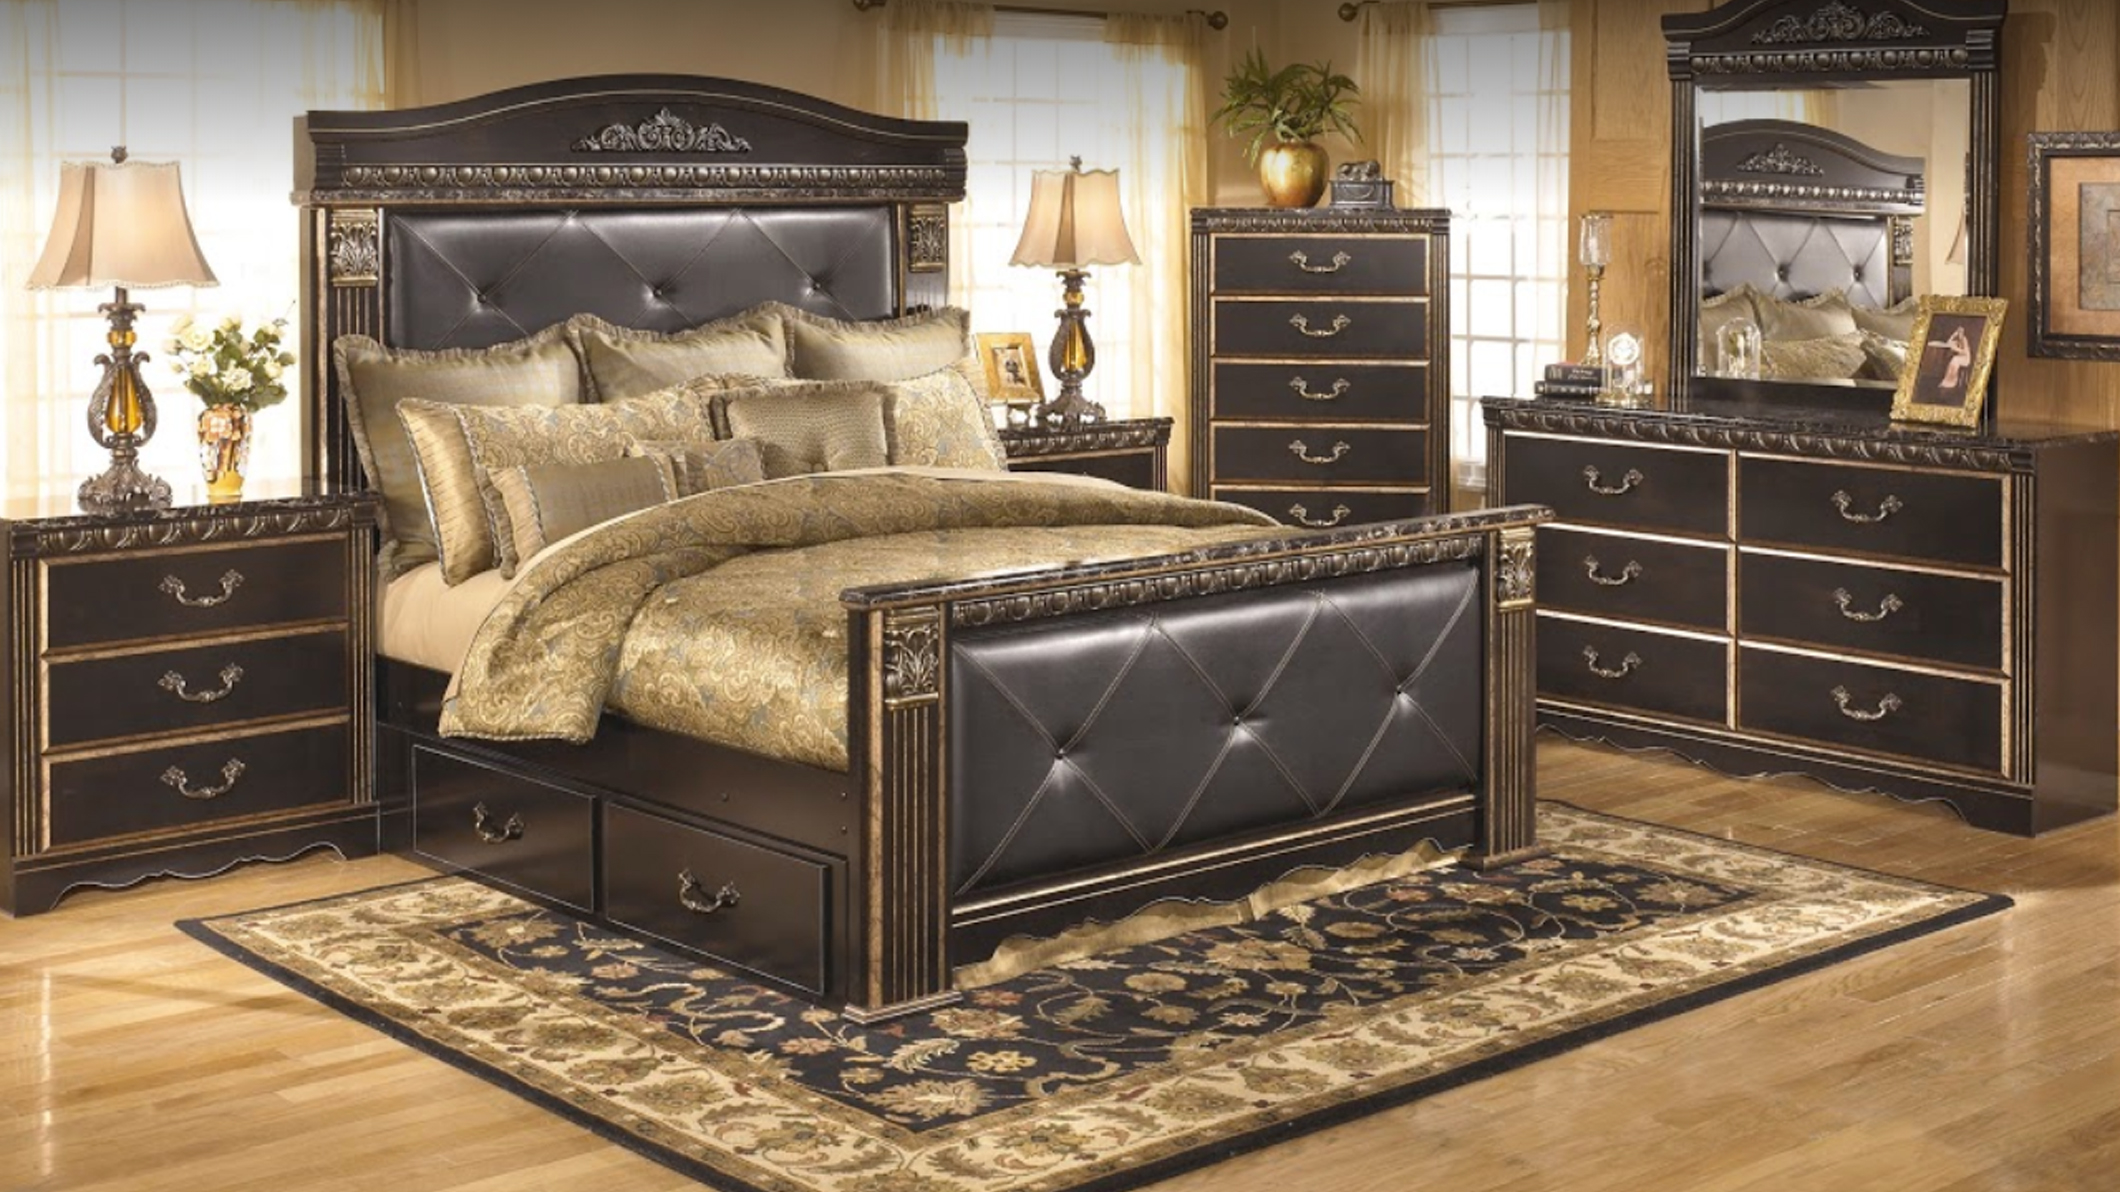 United Furniture  Electronics In Chicago IL Whitepages - Furniture nearby